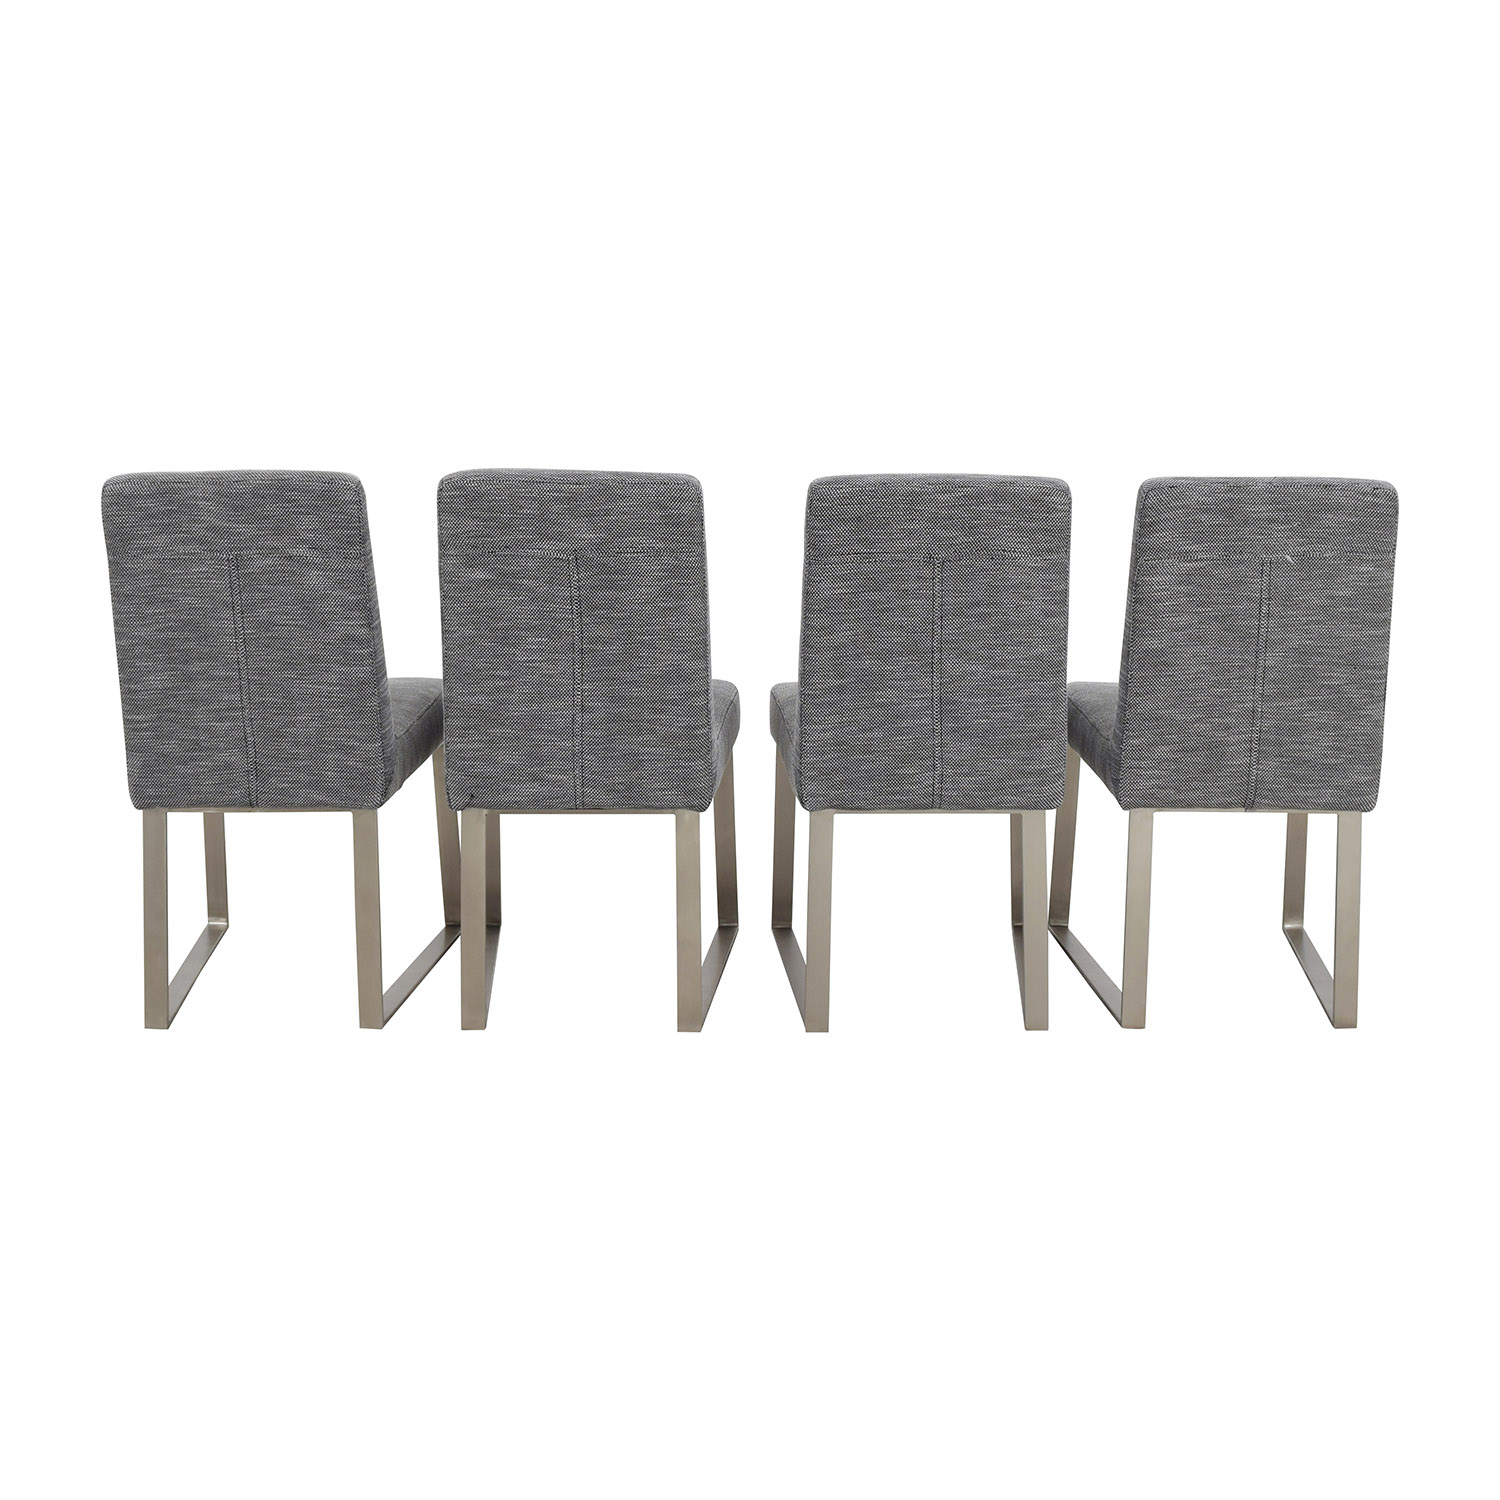 InMod InMod Vivo Grey Chairs on sale